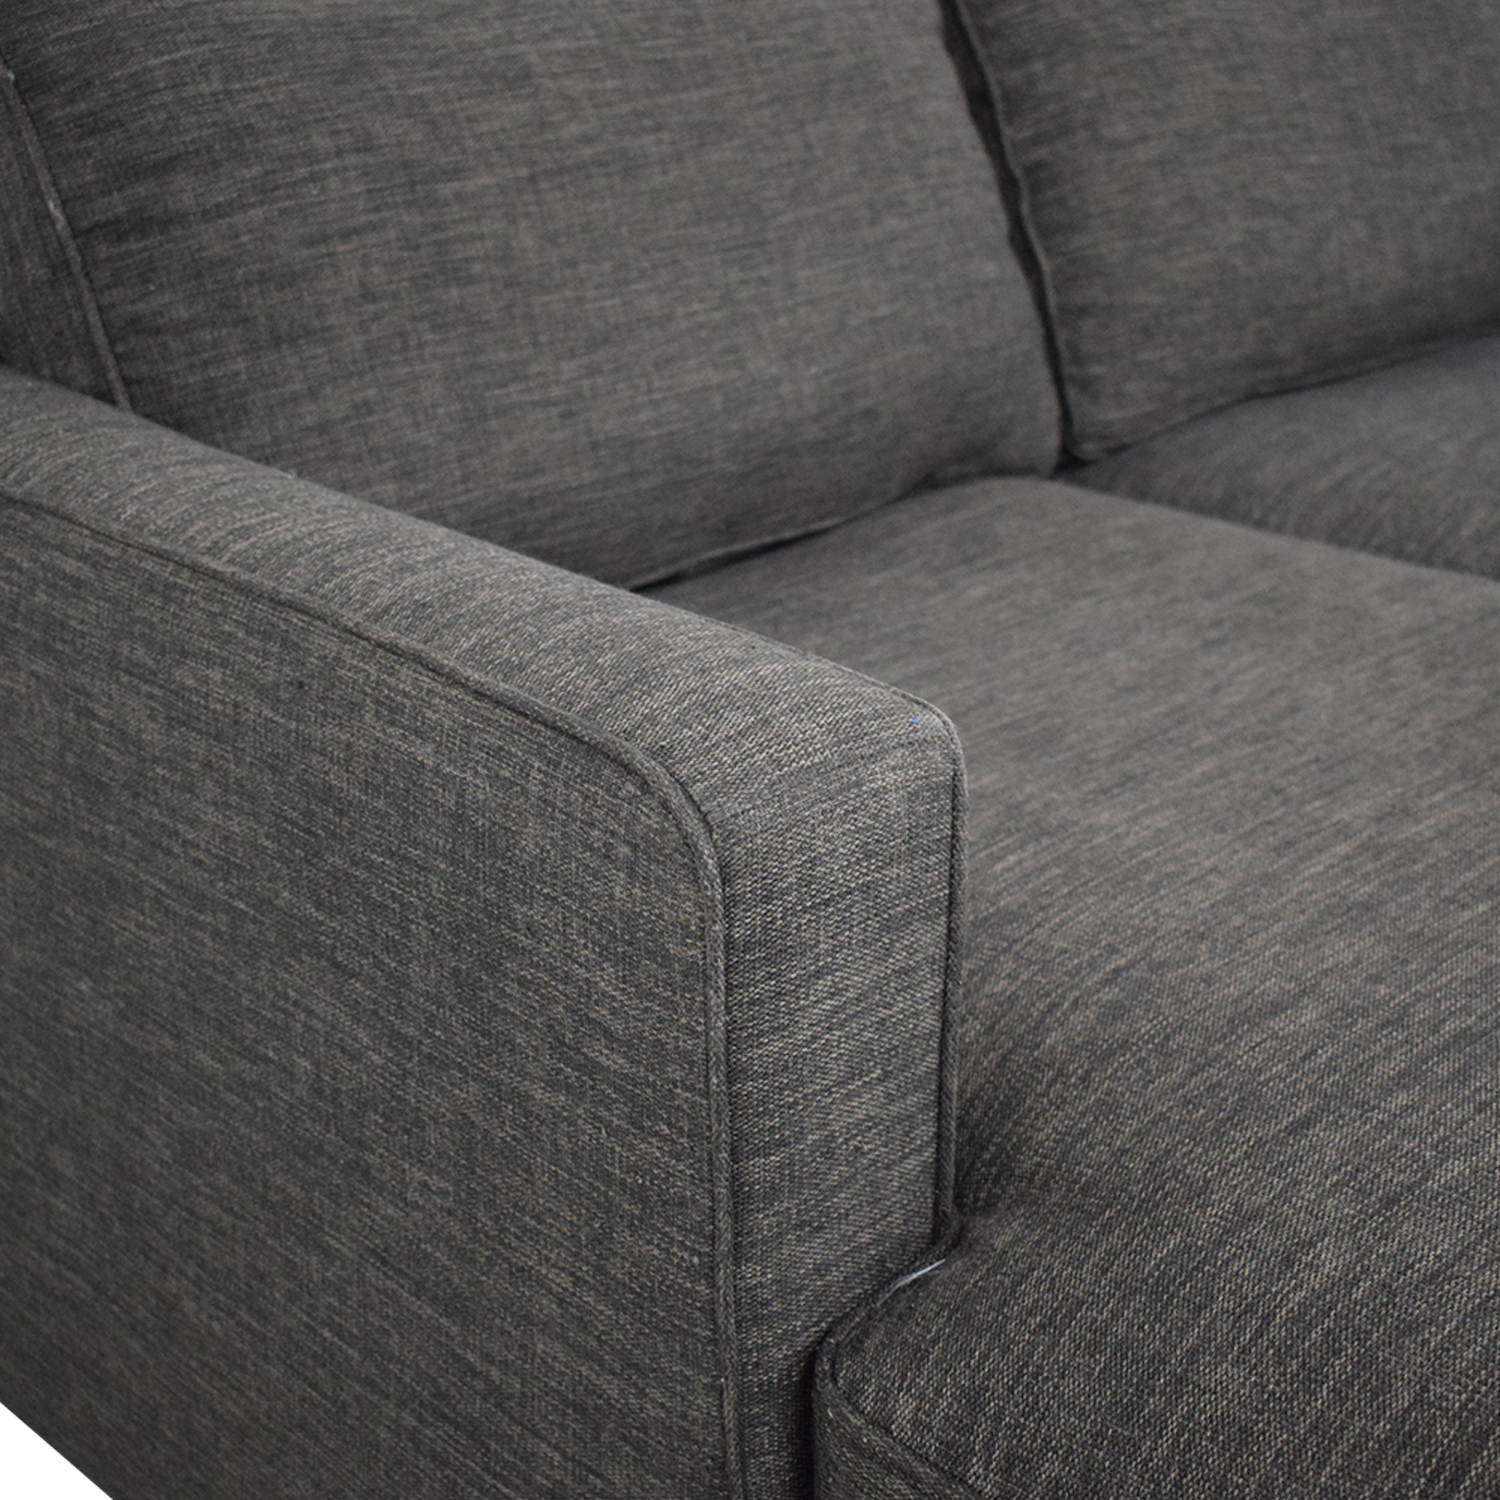 Crate & Barrel Crate & Barrel Davis Sectional Couch with Chaise dimensions